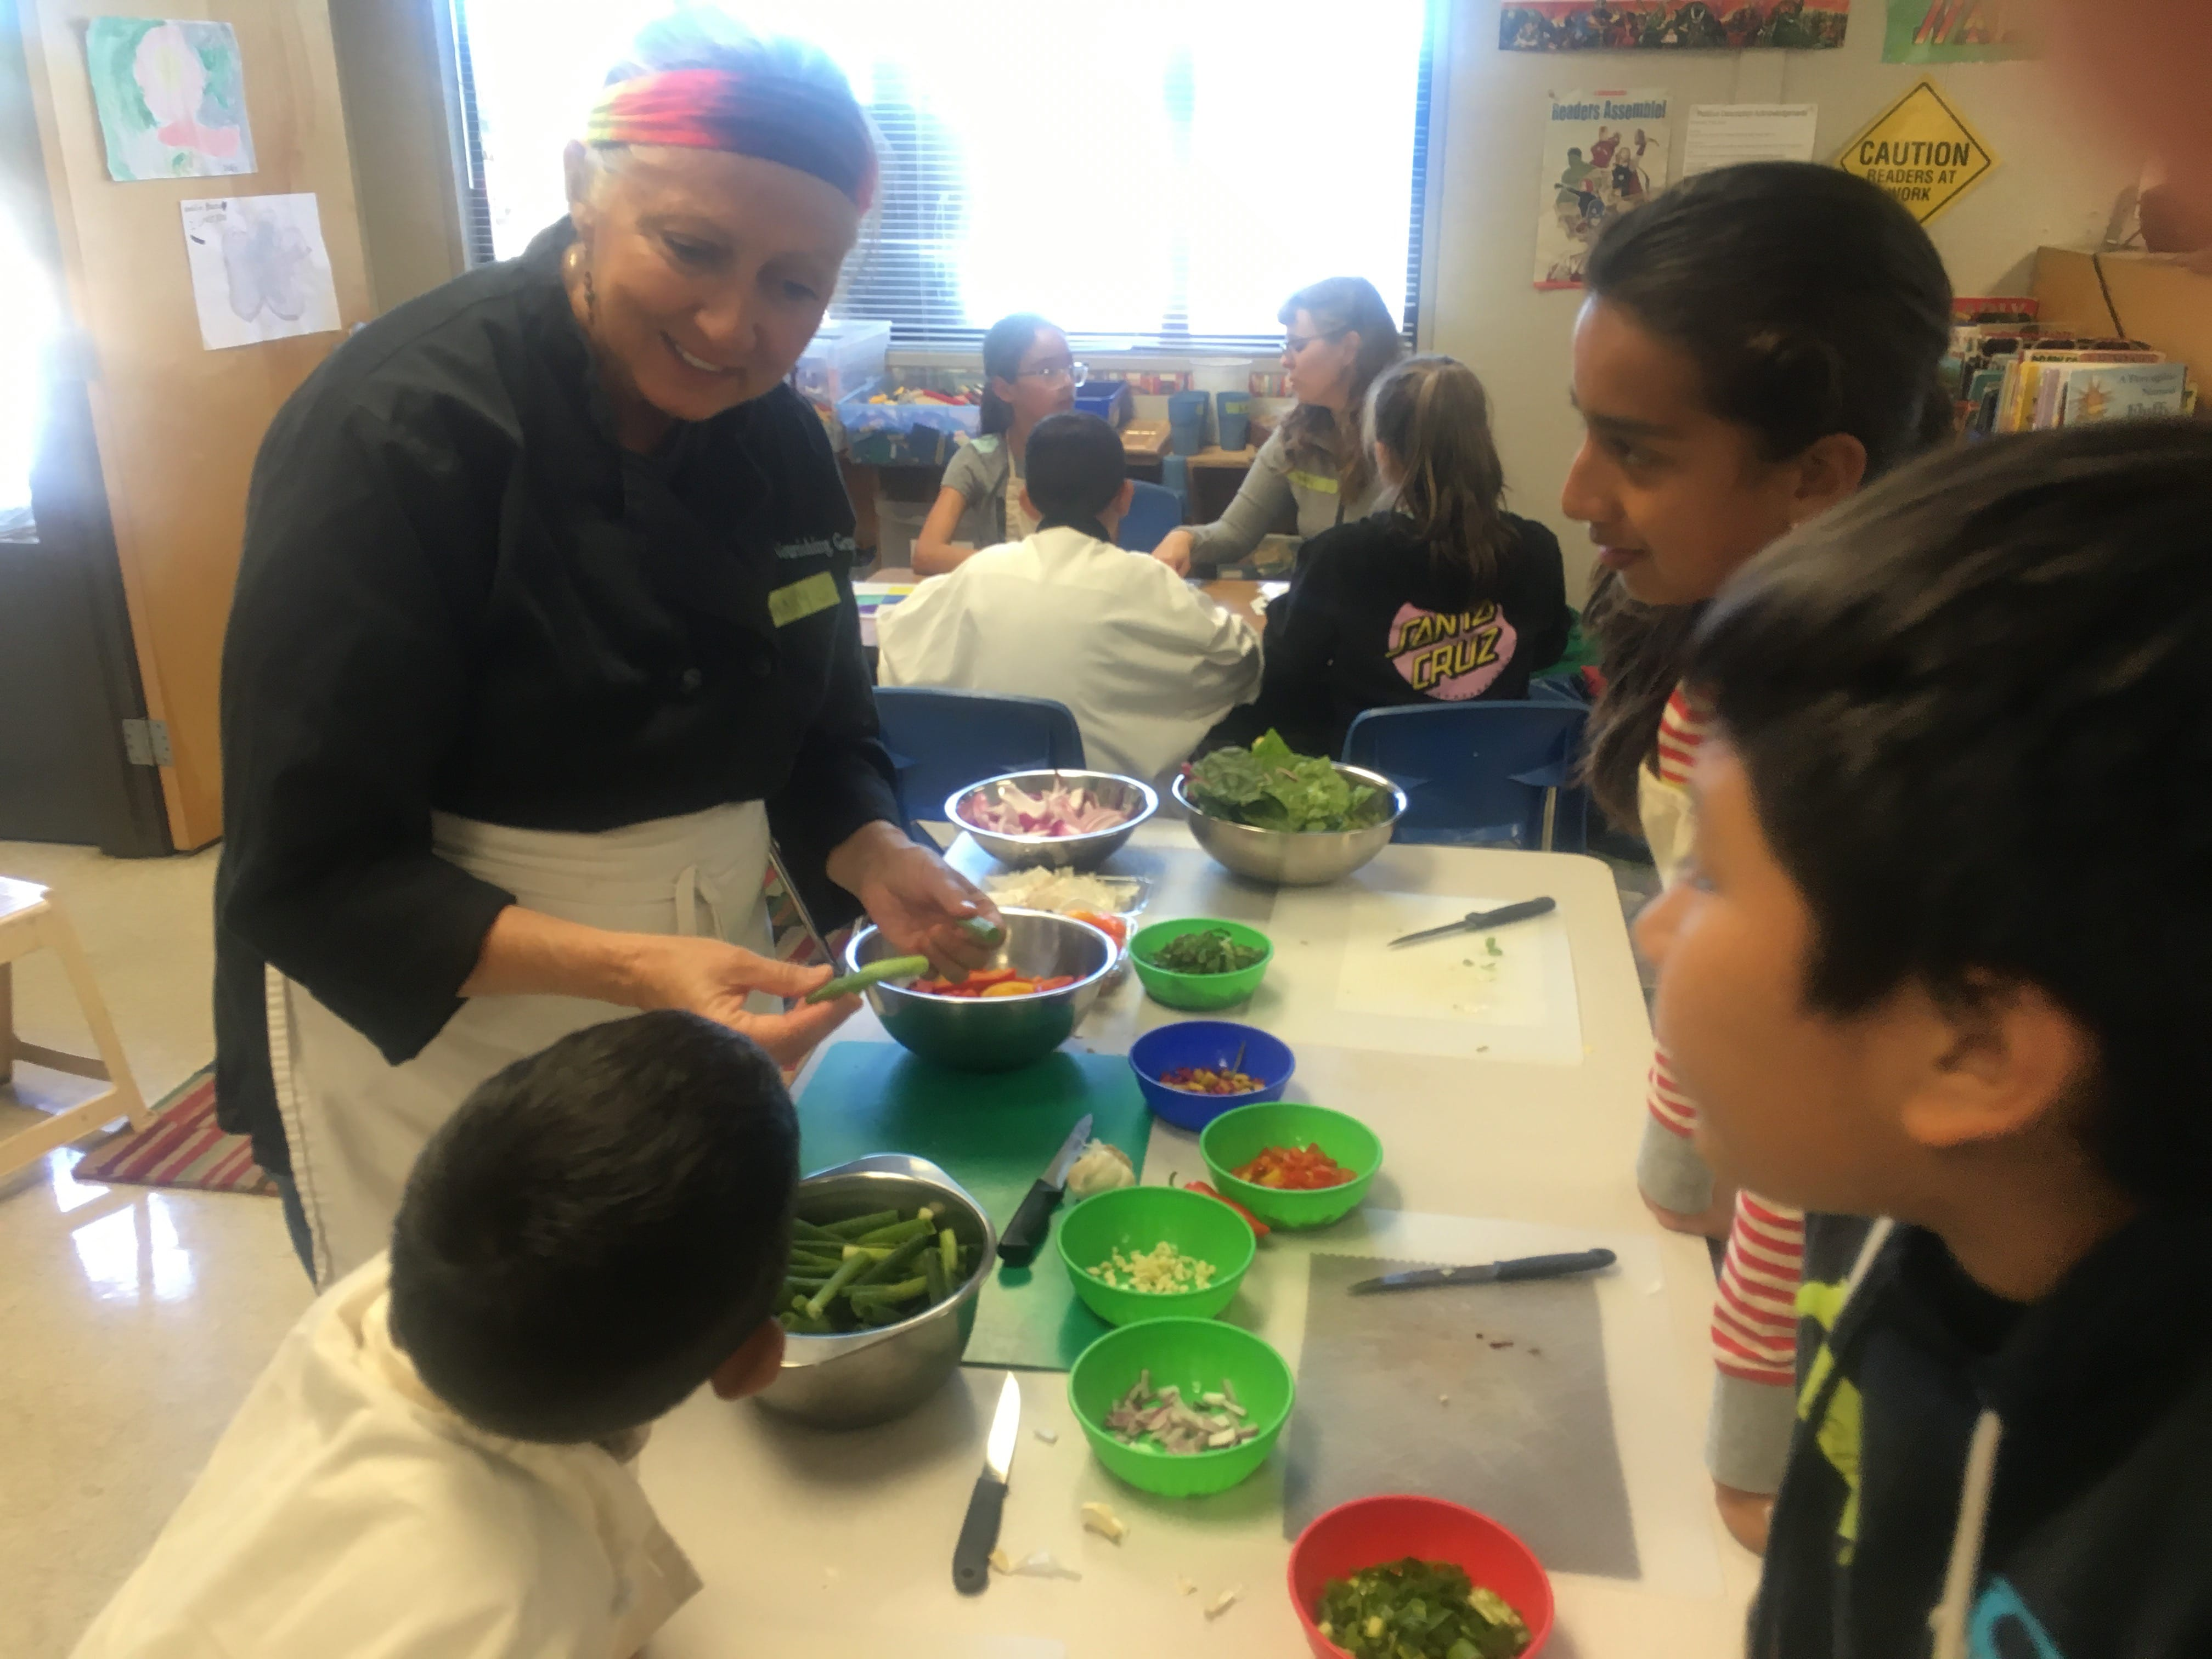 teacher showing cooking skills to 3 students